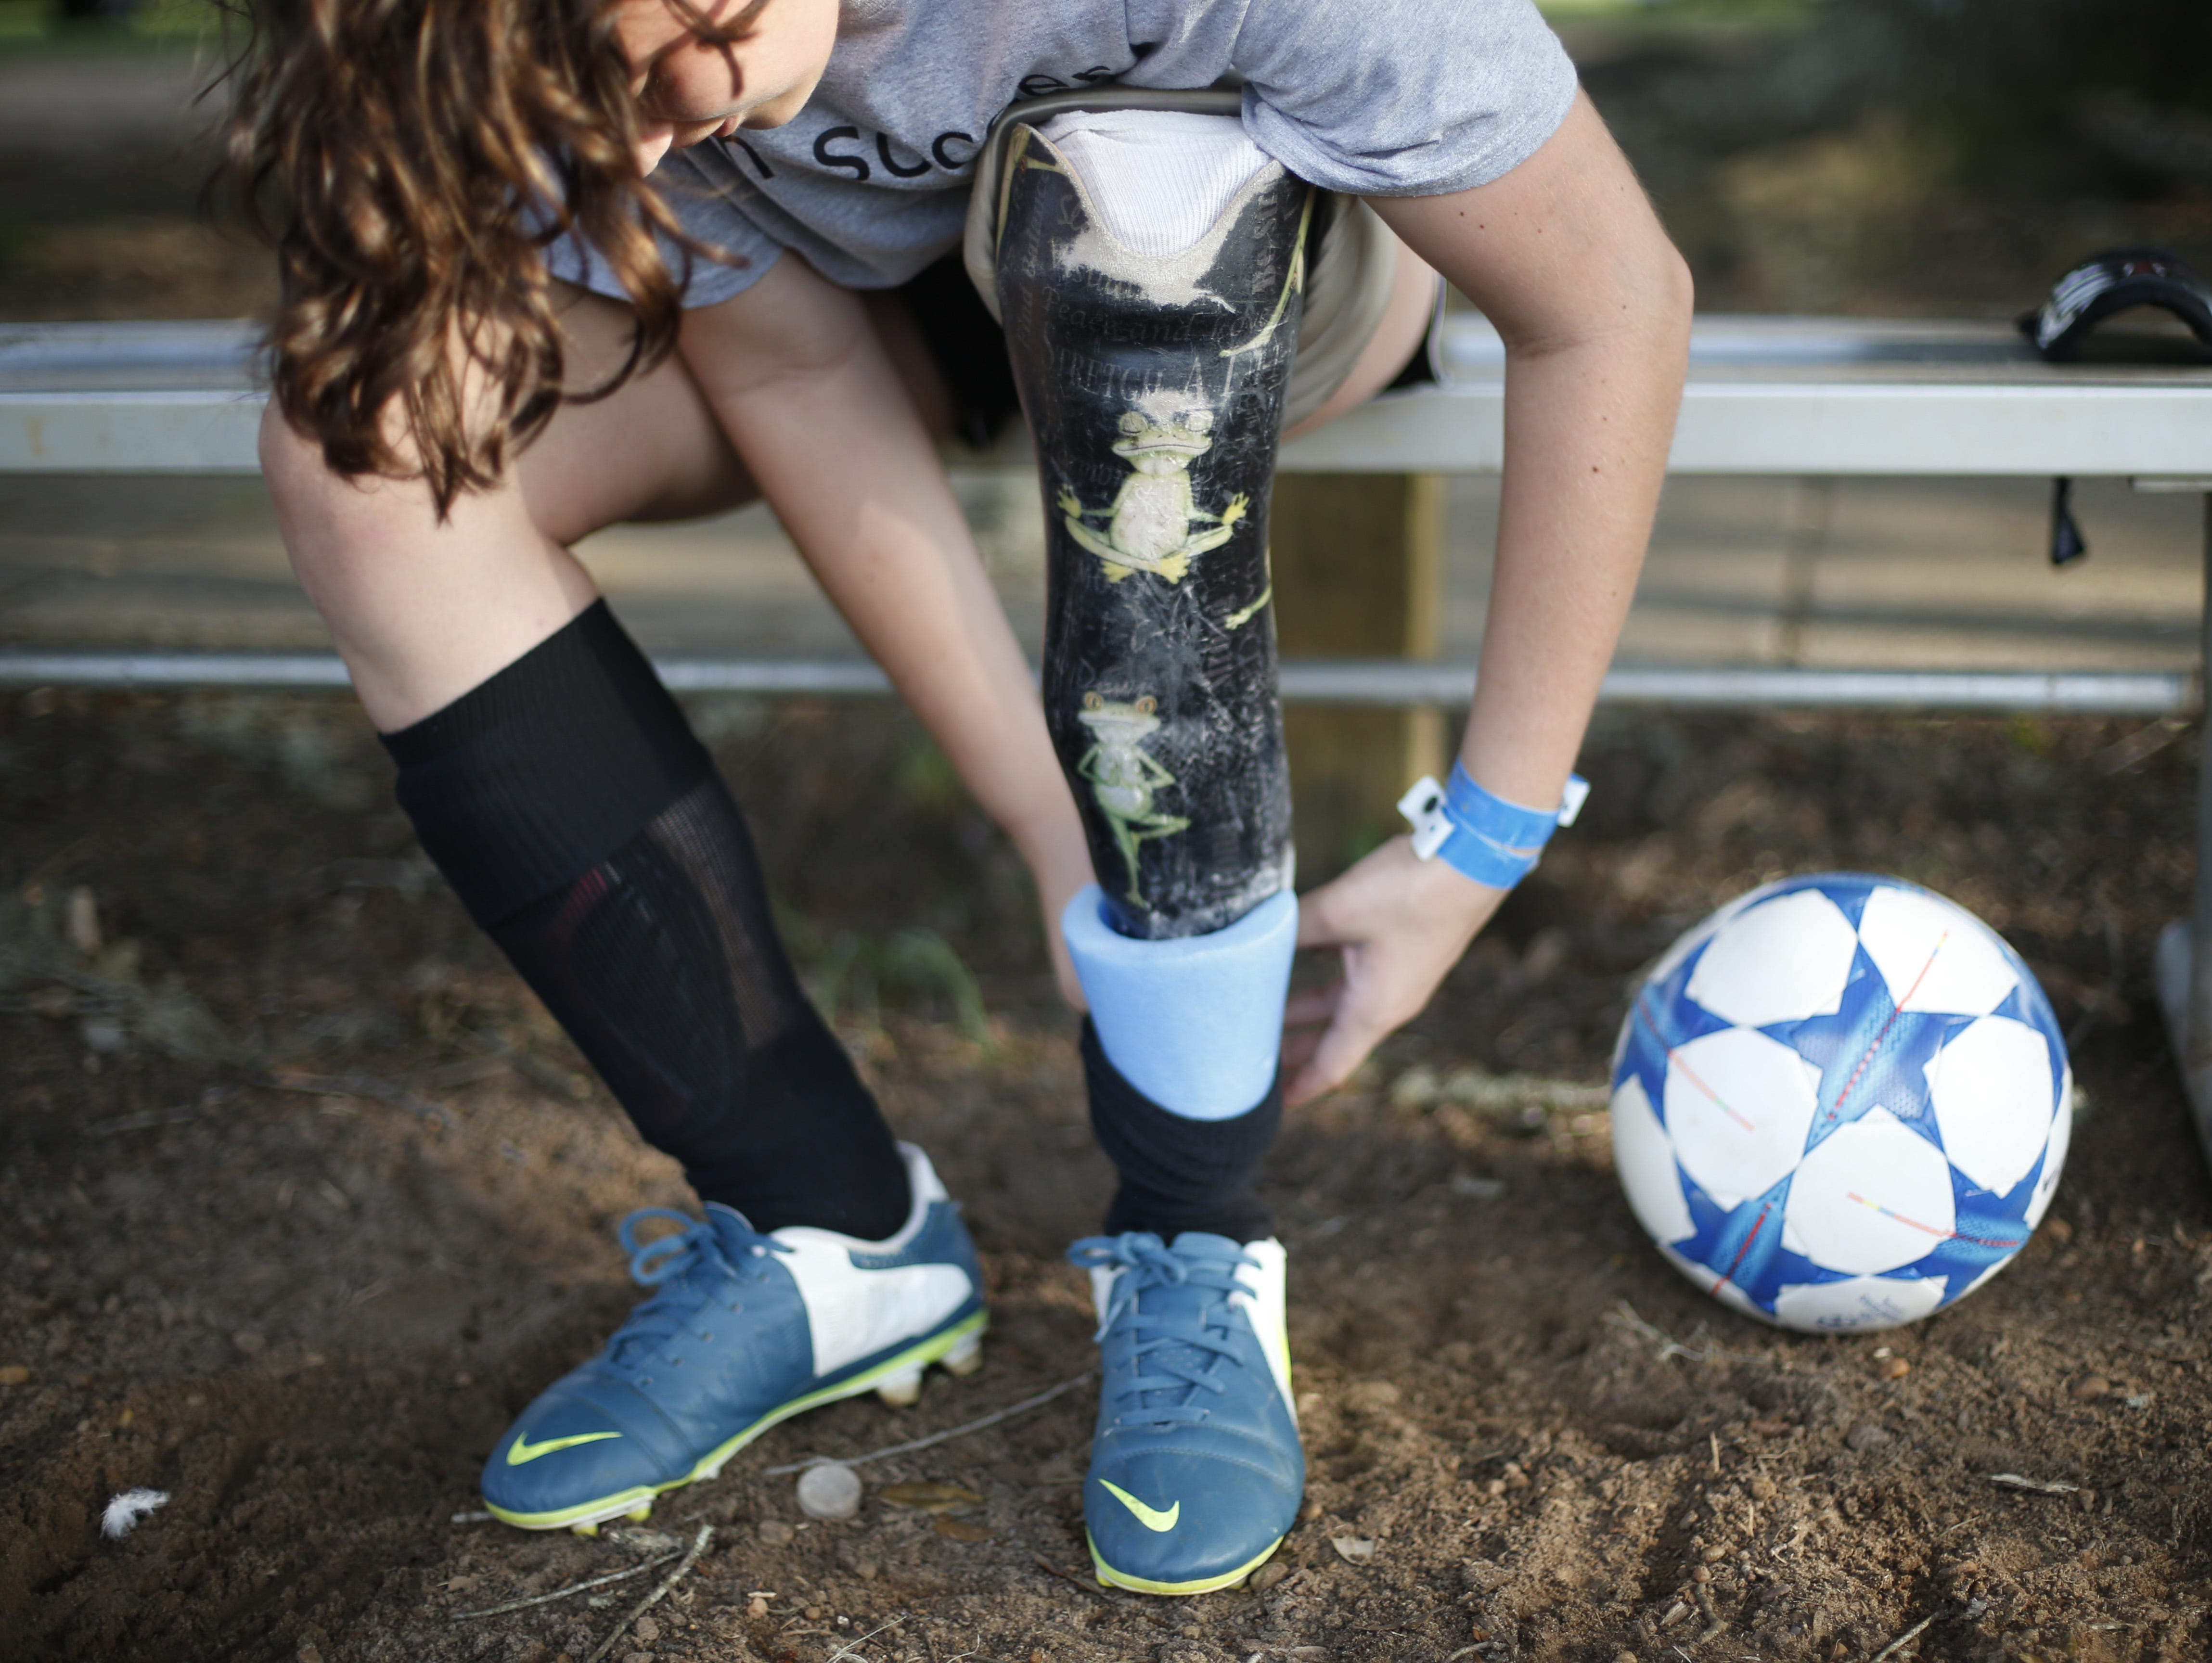 Erica Silvey, 13, covers the ankle of her prosthetic leg with a portion of a pool noodle, a homemade device fashioned to cover the titanium portion of her leg and prevent her from hurting other players during competition.